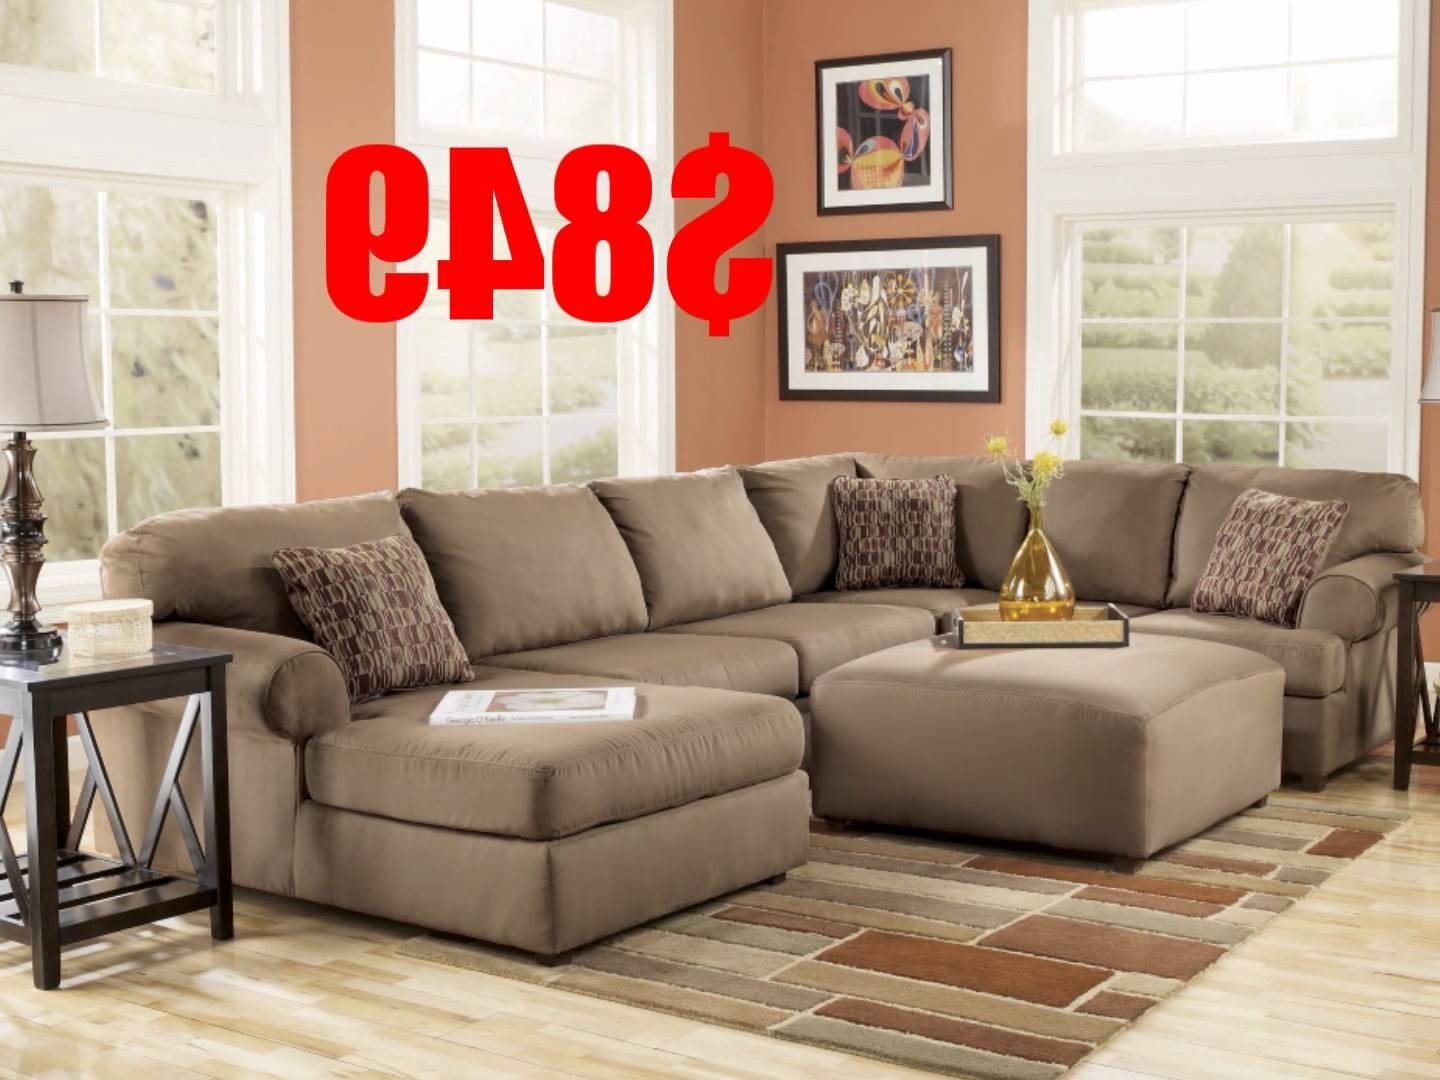 Widely Used Beautiful Ashley Furniture Sofas Sectionals Pictures – Liltigertoo For Sectional Sofas At Ashley Furniture (View 2 of 15)